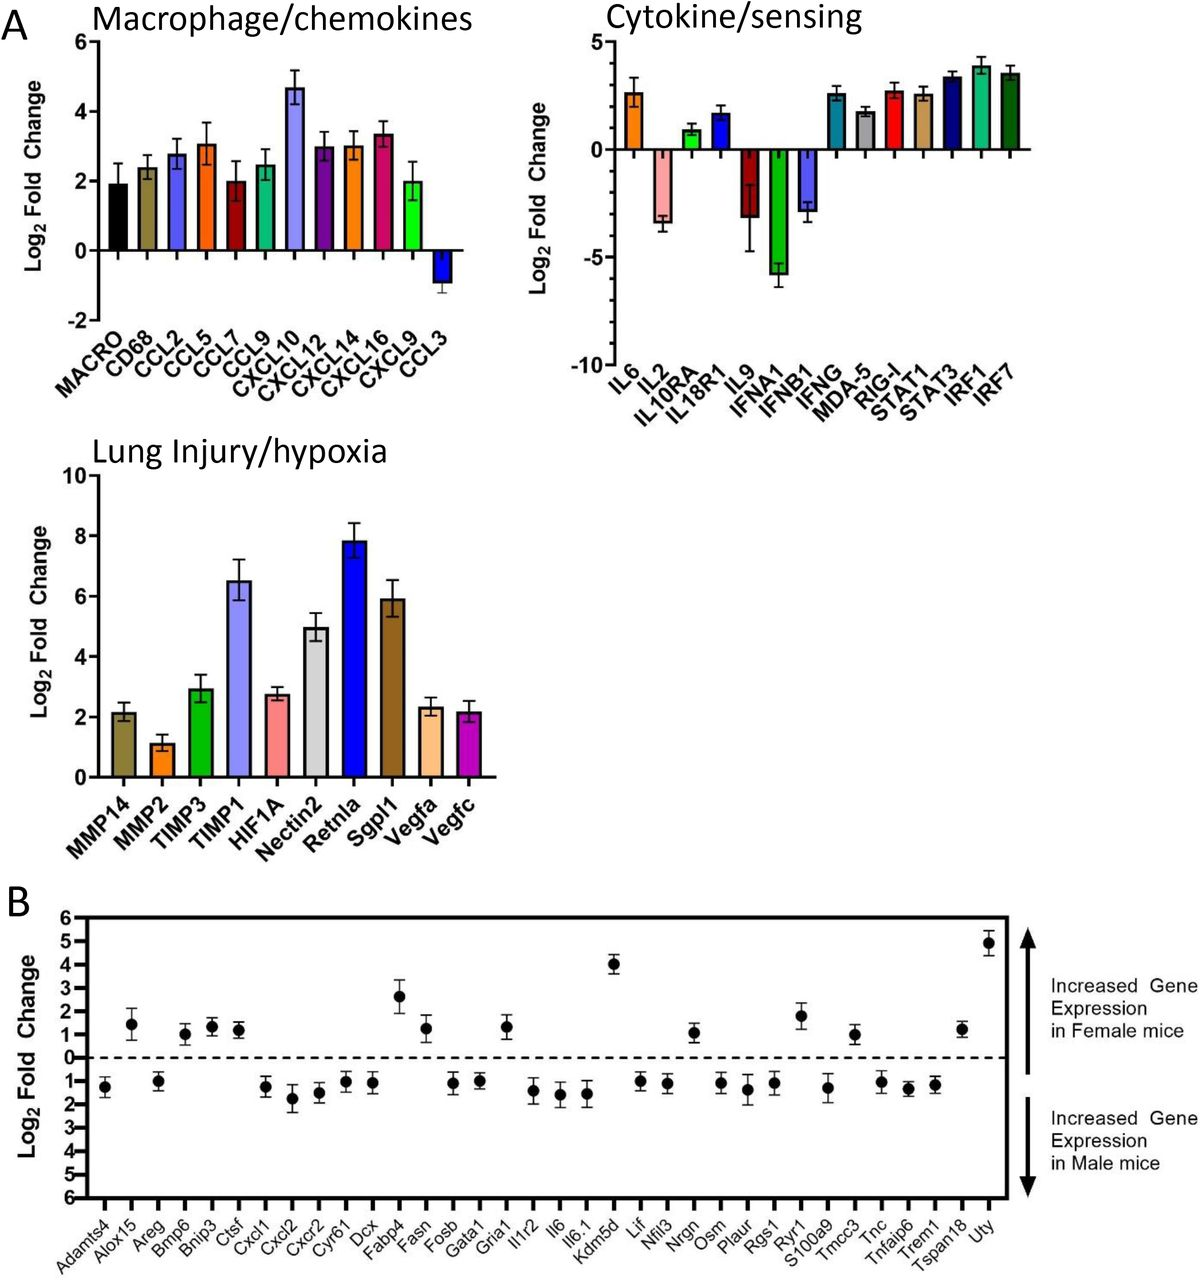 Transcriptional activation in SARS-CoV-2 infected lungs. Transcriptional activation in lung homogenates from infected K18-hACE2 (male and female) and C57BL/6 (female) mice were examined by NanoString. A. Log 2 fold changes in gene expression levels of selected genes categorized by group versus infected C57BL/6 mice were graphed with SD. All graphed transcripts had a p value of